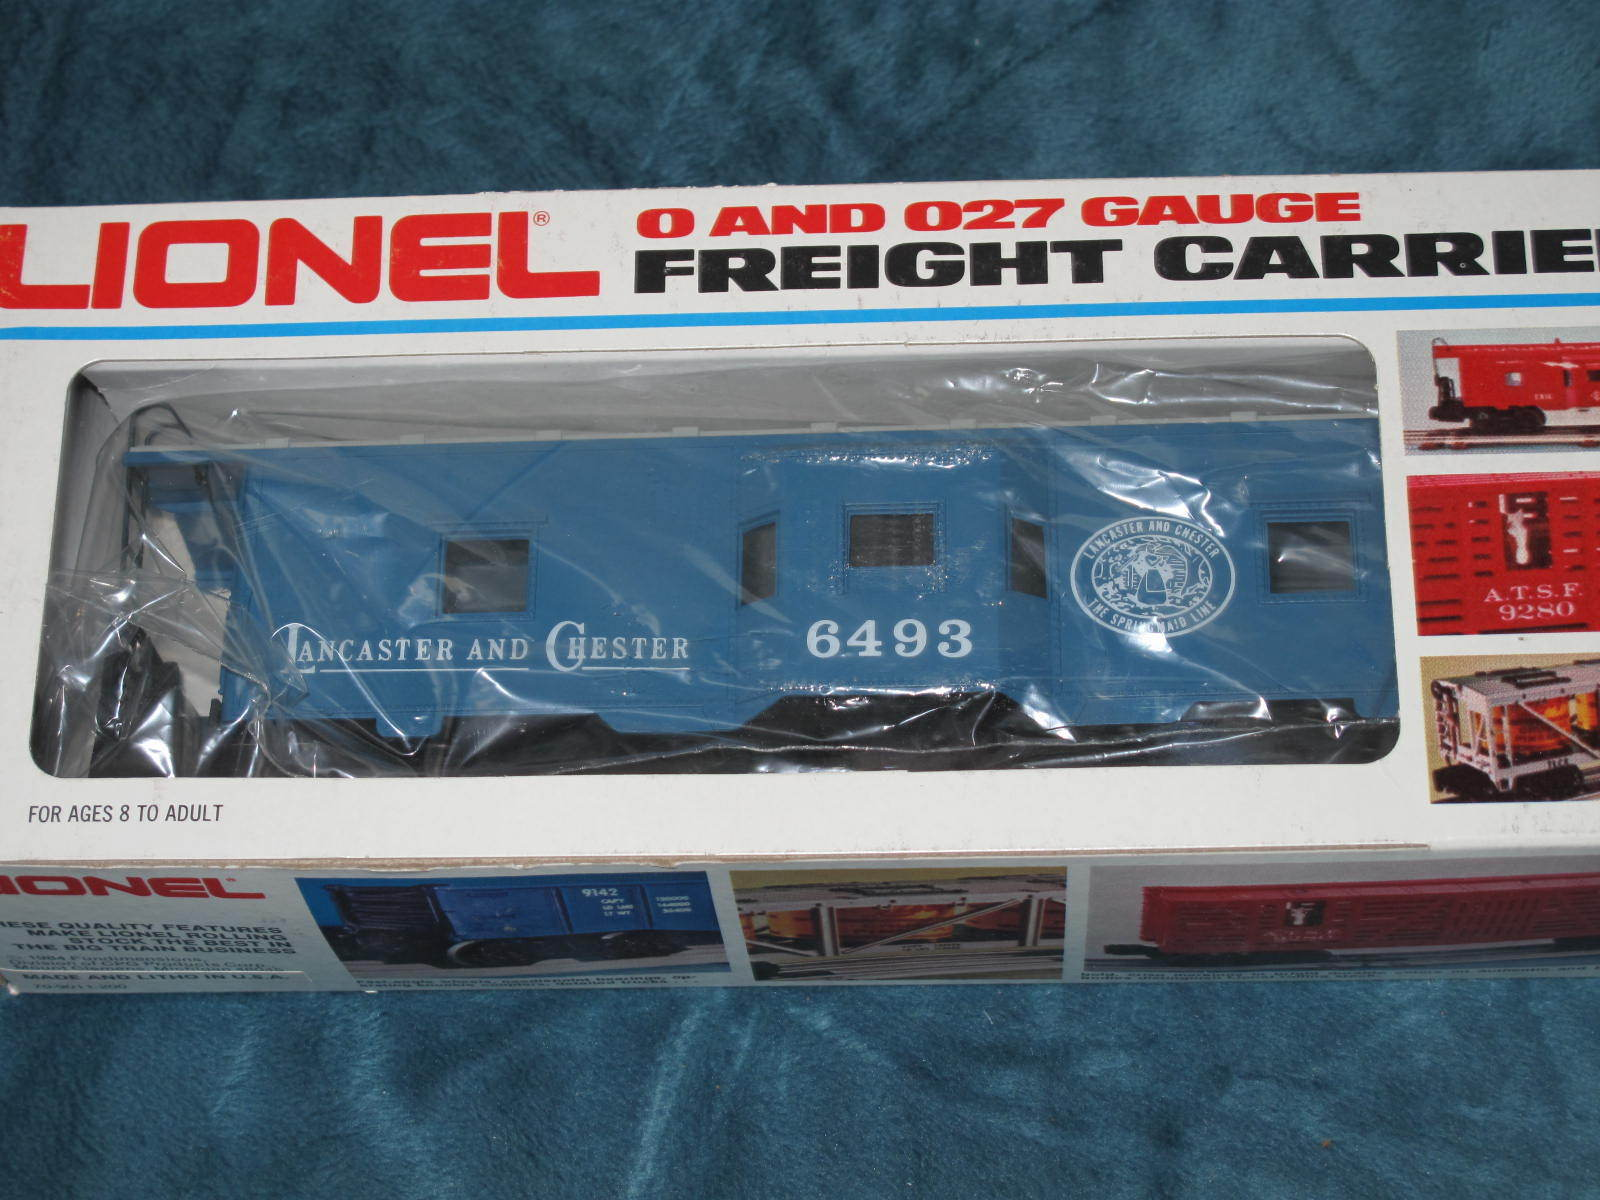 1986 Lionel 6-6493 Lancaster and Chester Bay Window Caboose NIB L1935